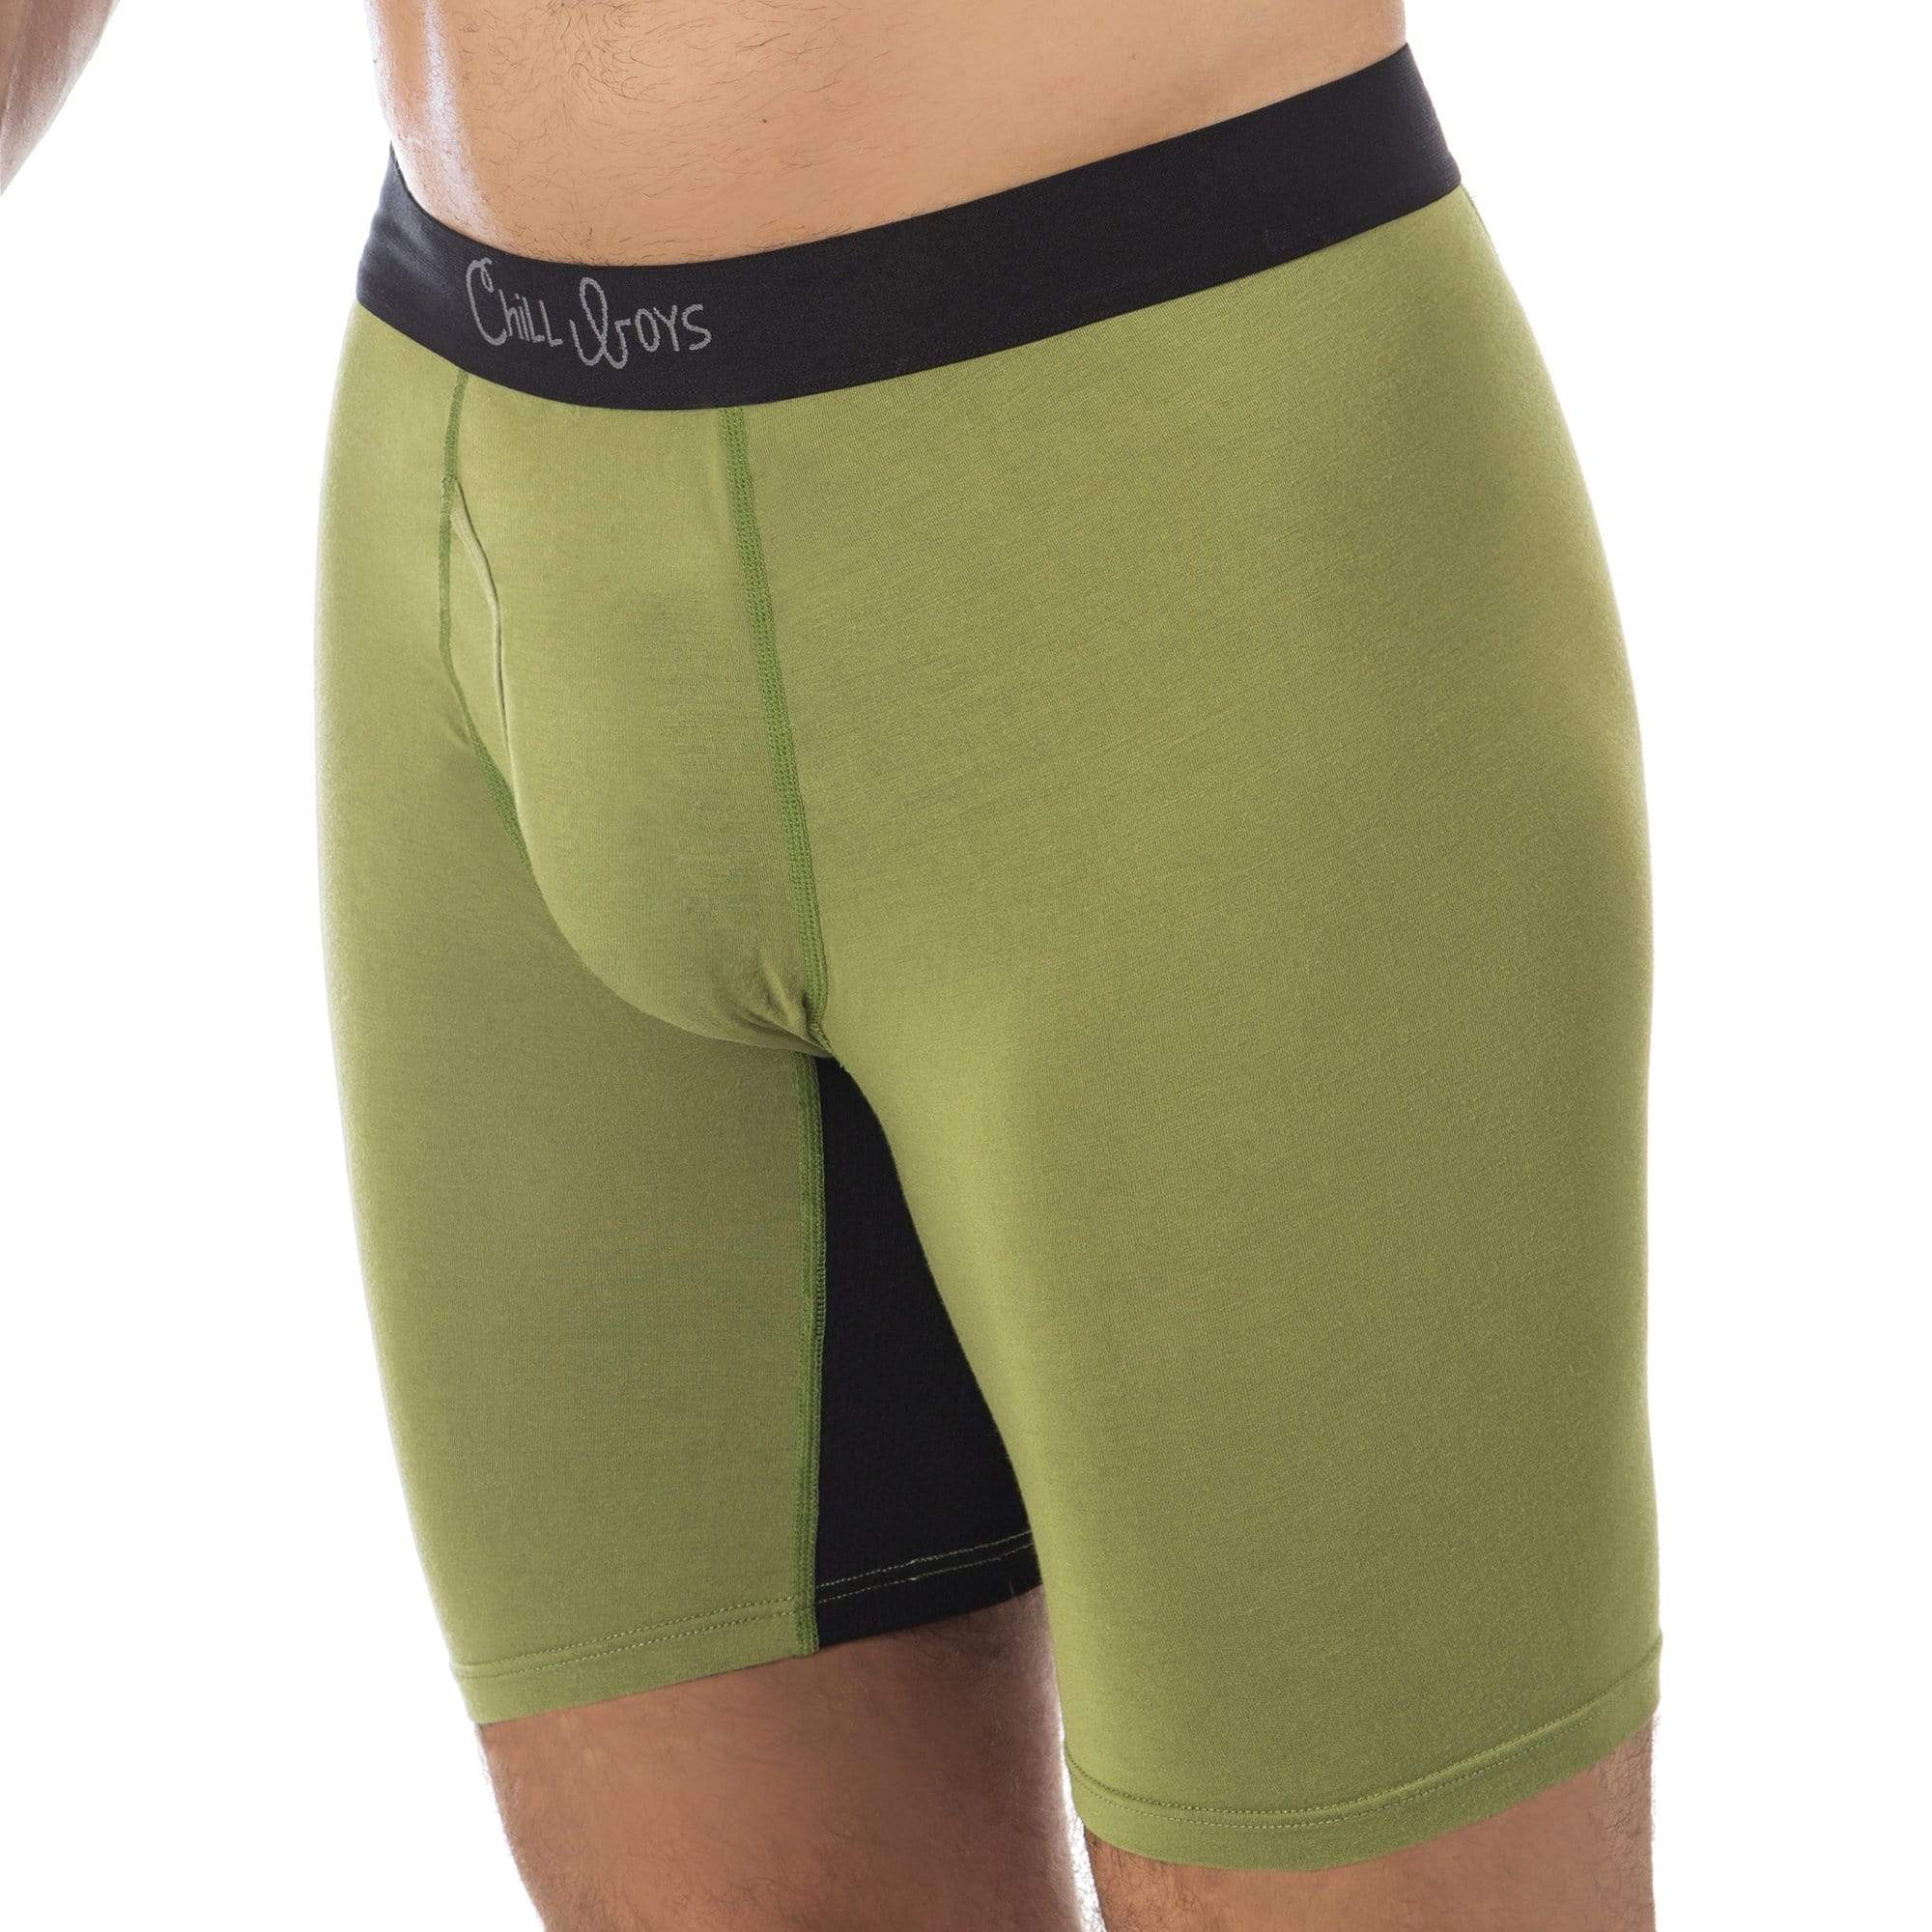 cool boxer briefs, anti friction, soft bamboo boxer briefs